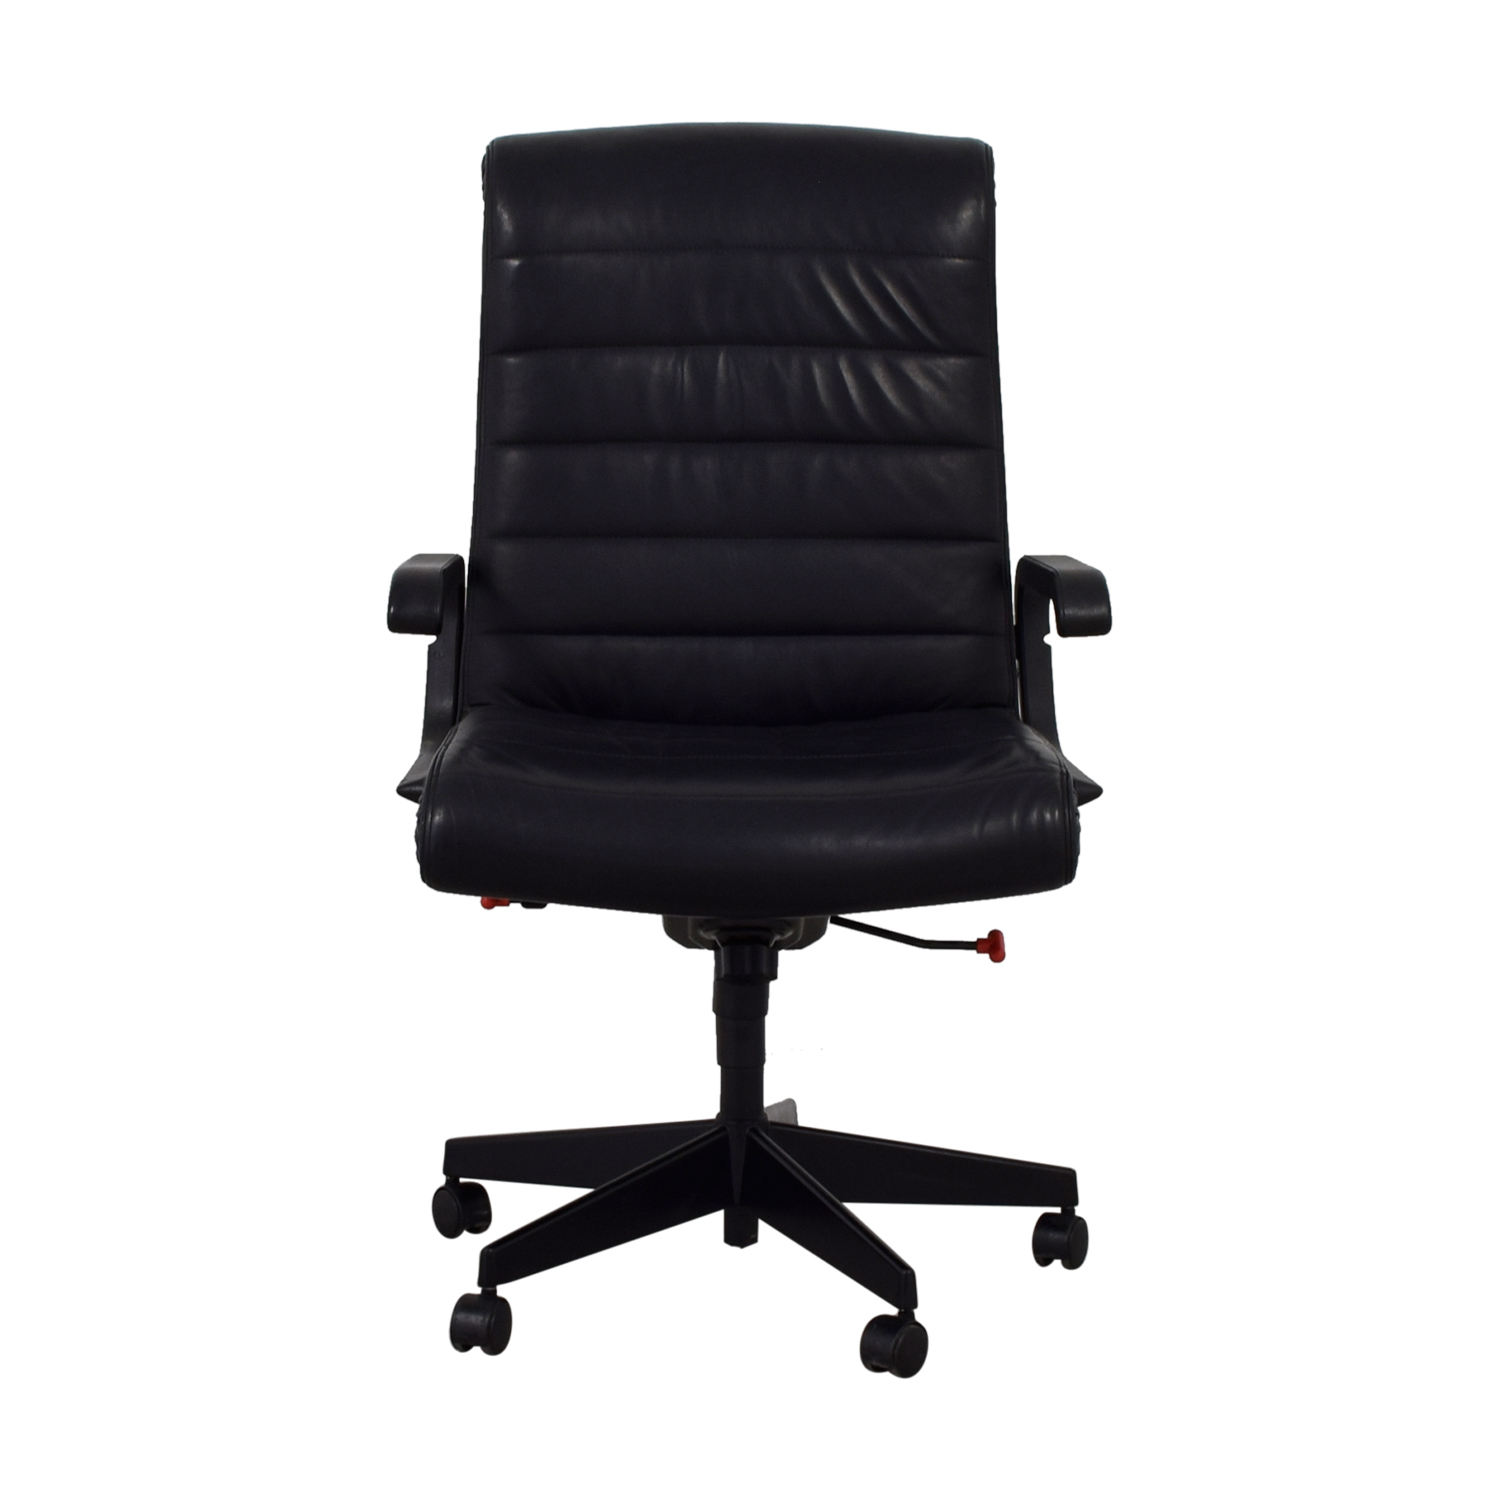 ikea rolling chair reclining outdoor chairs 51 off patrik desk